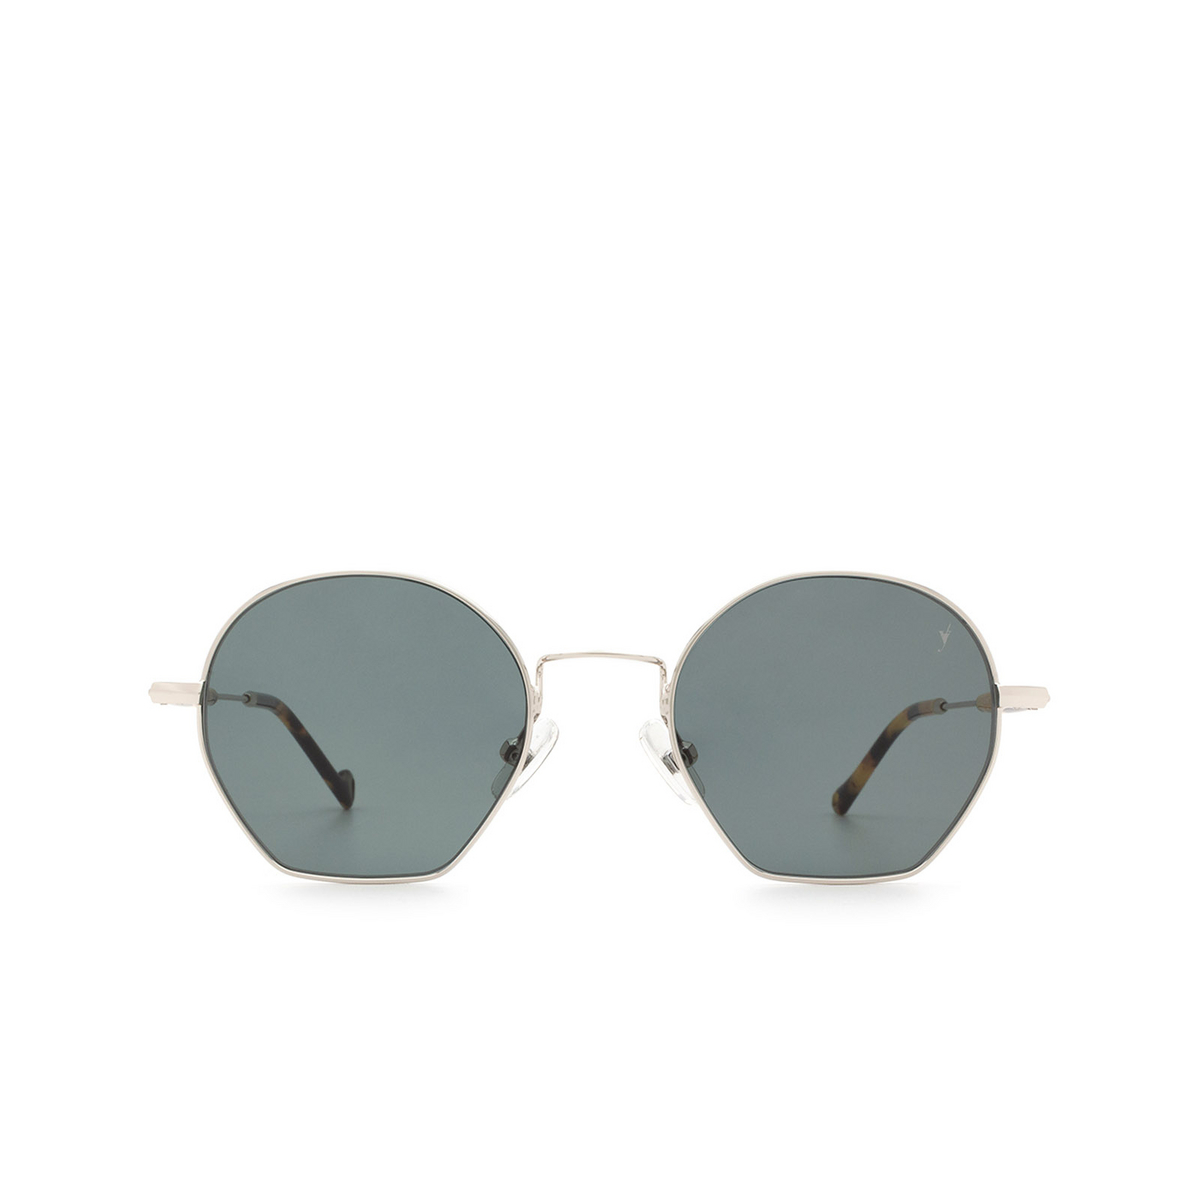 Eyepetizer® Irregular Sunglasses: Guimet color Silver C.1-F-40 - front view.